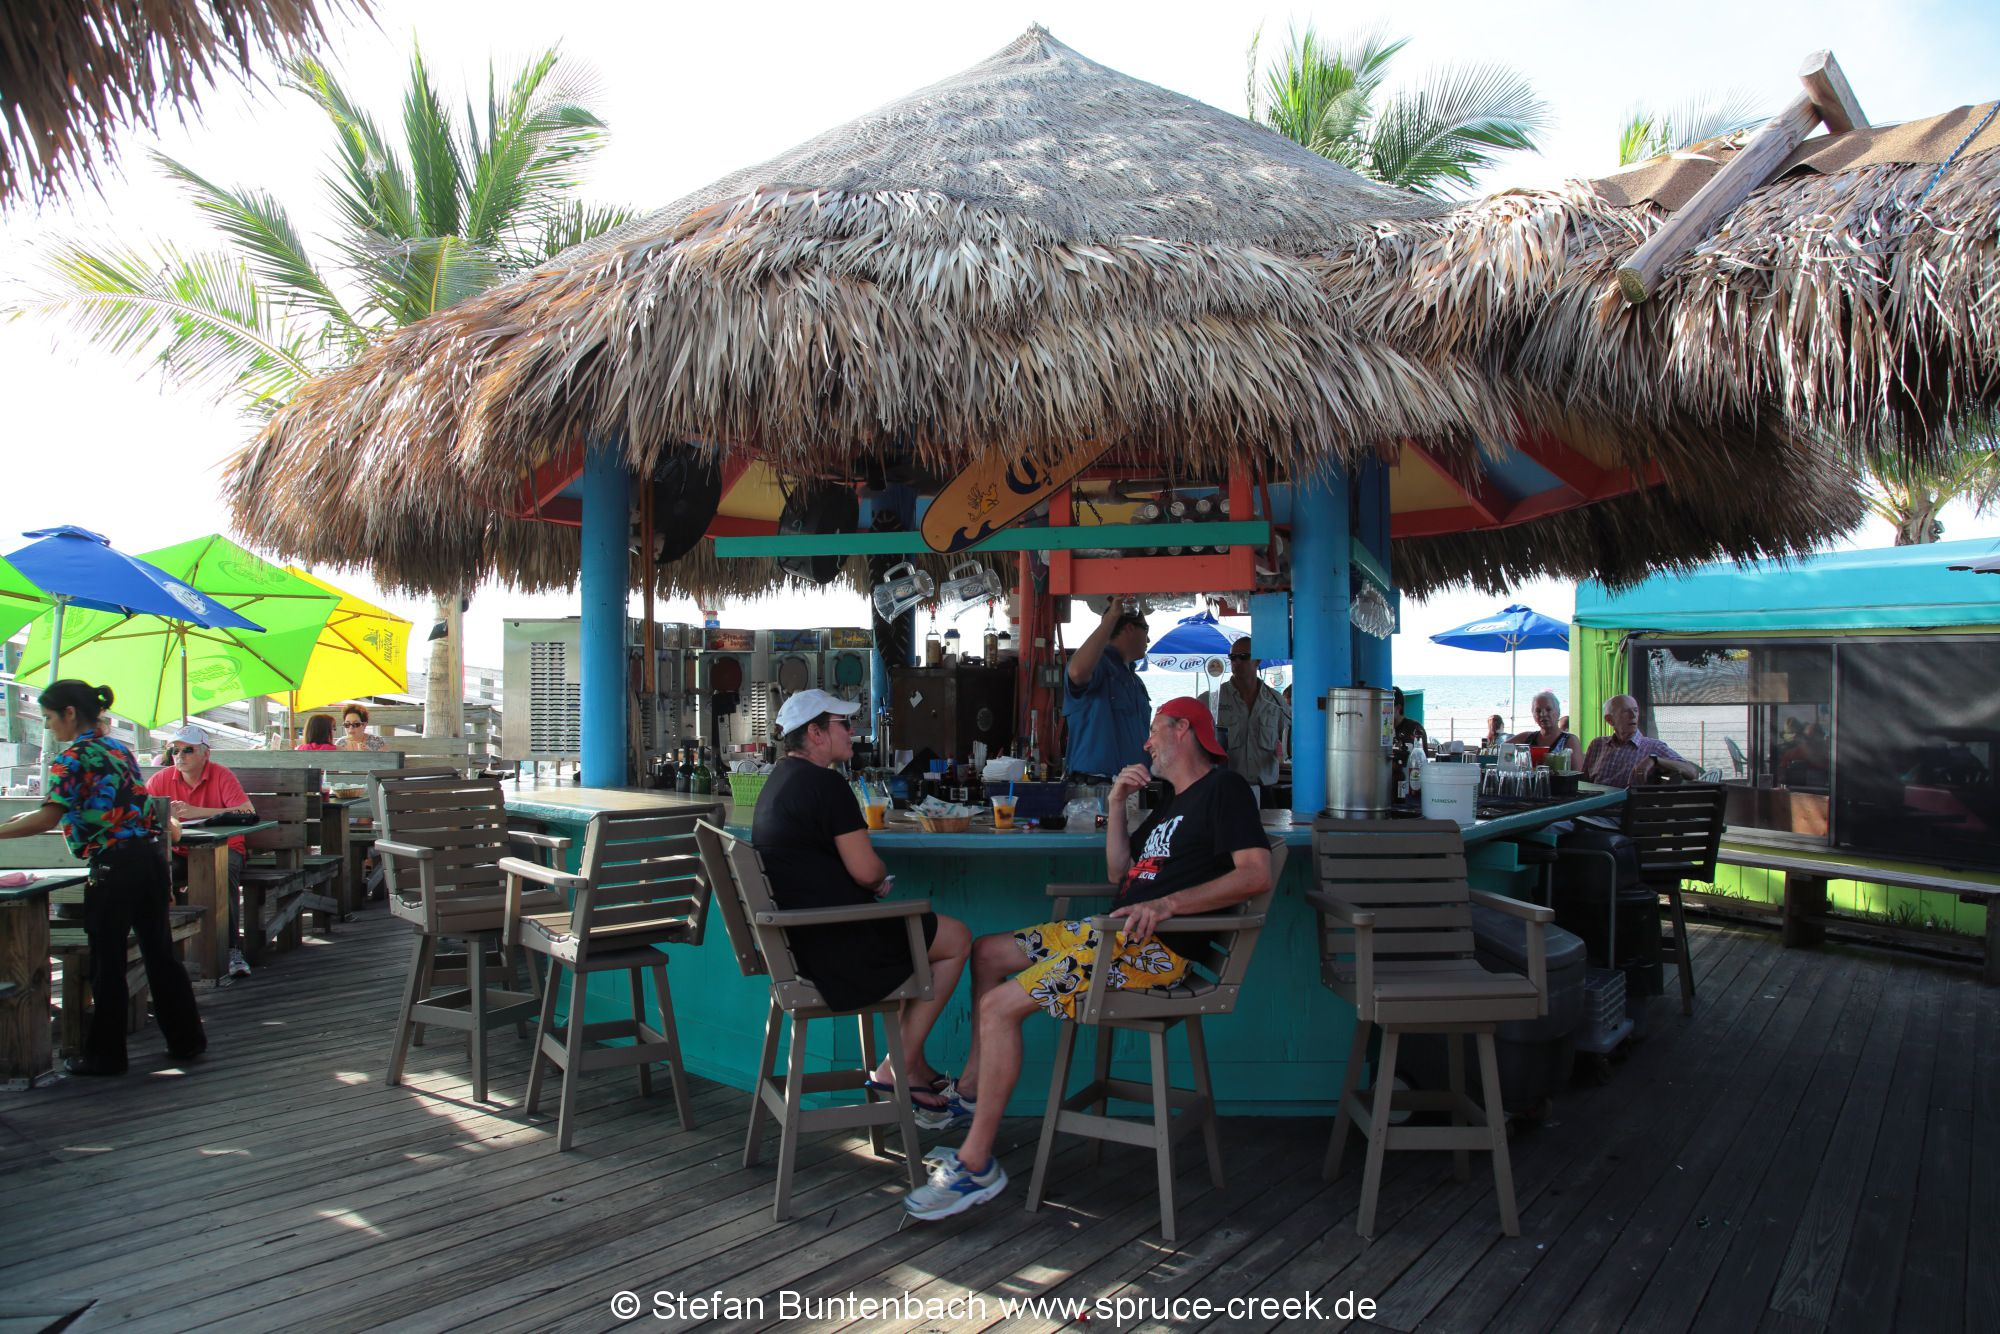 Karibisches Flair im Sharky's Restaurant in Venice in Florida am Strand.